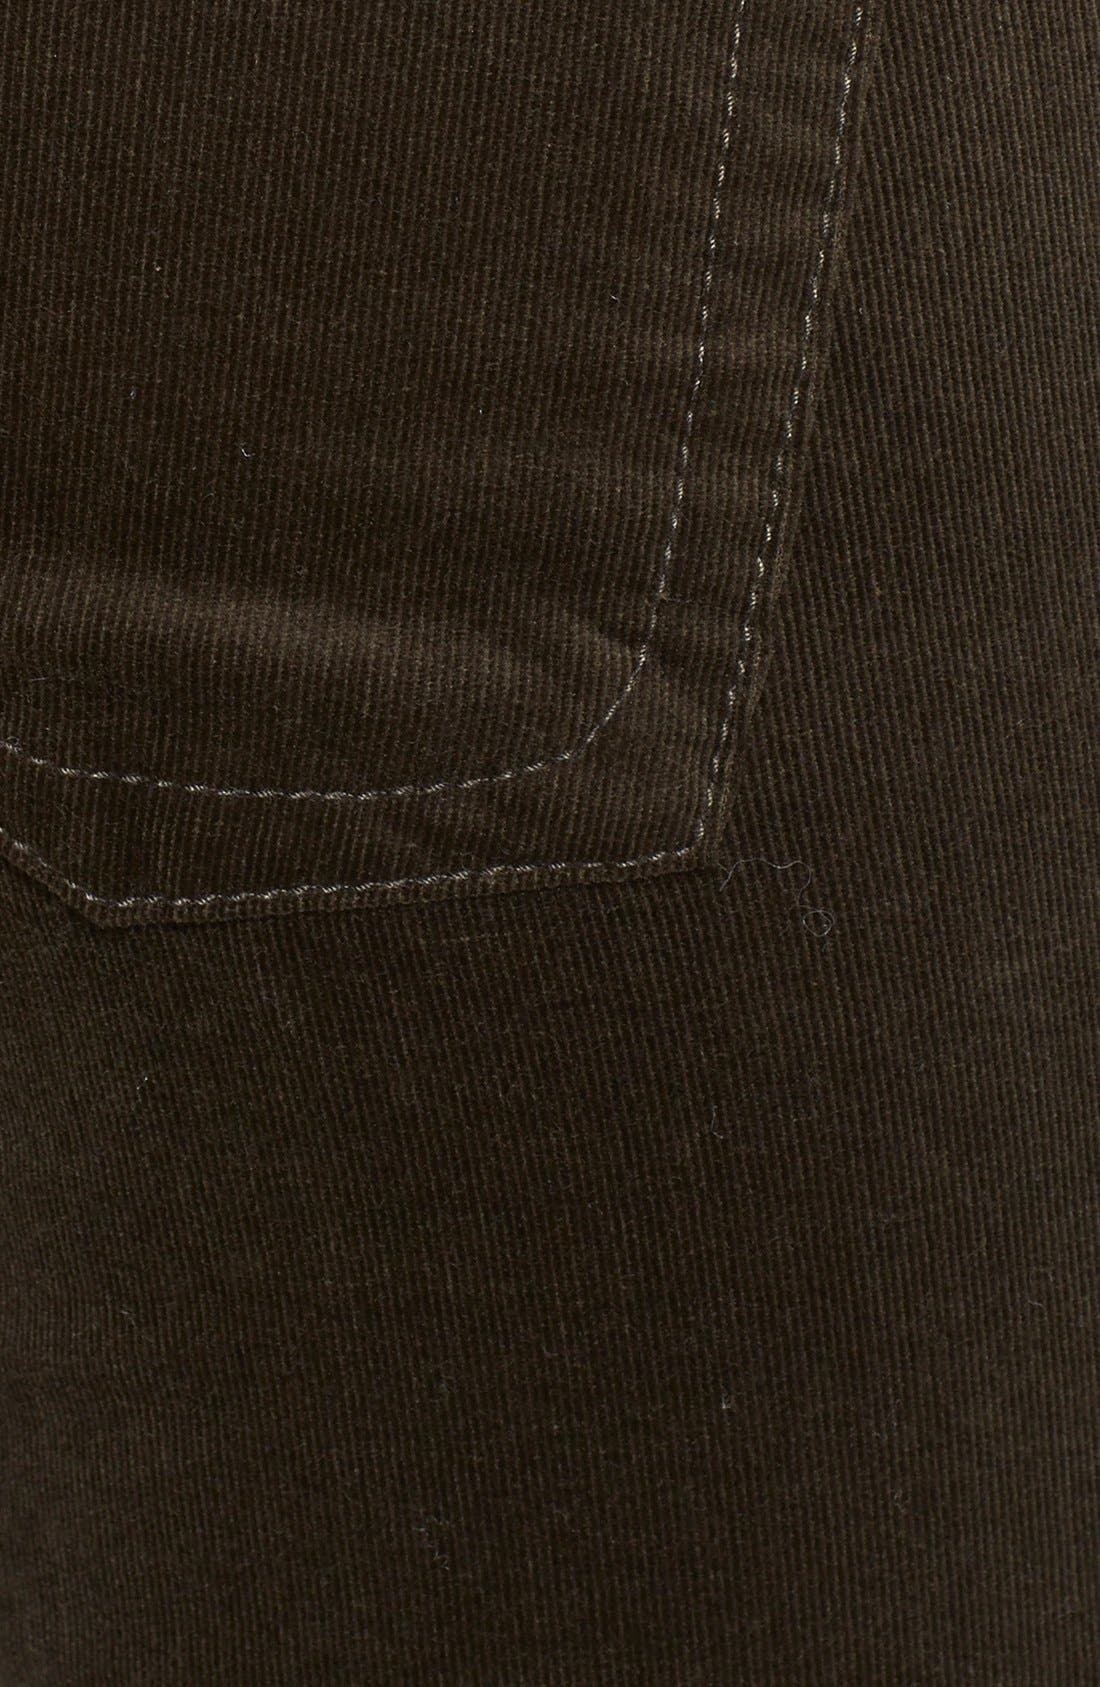 Baby Bootcut Corduroy Jeans,                             Alternate thumbnail 41, color,